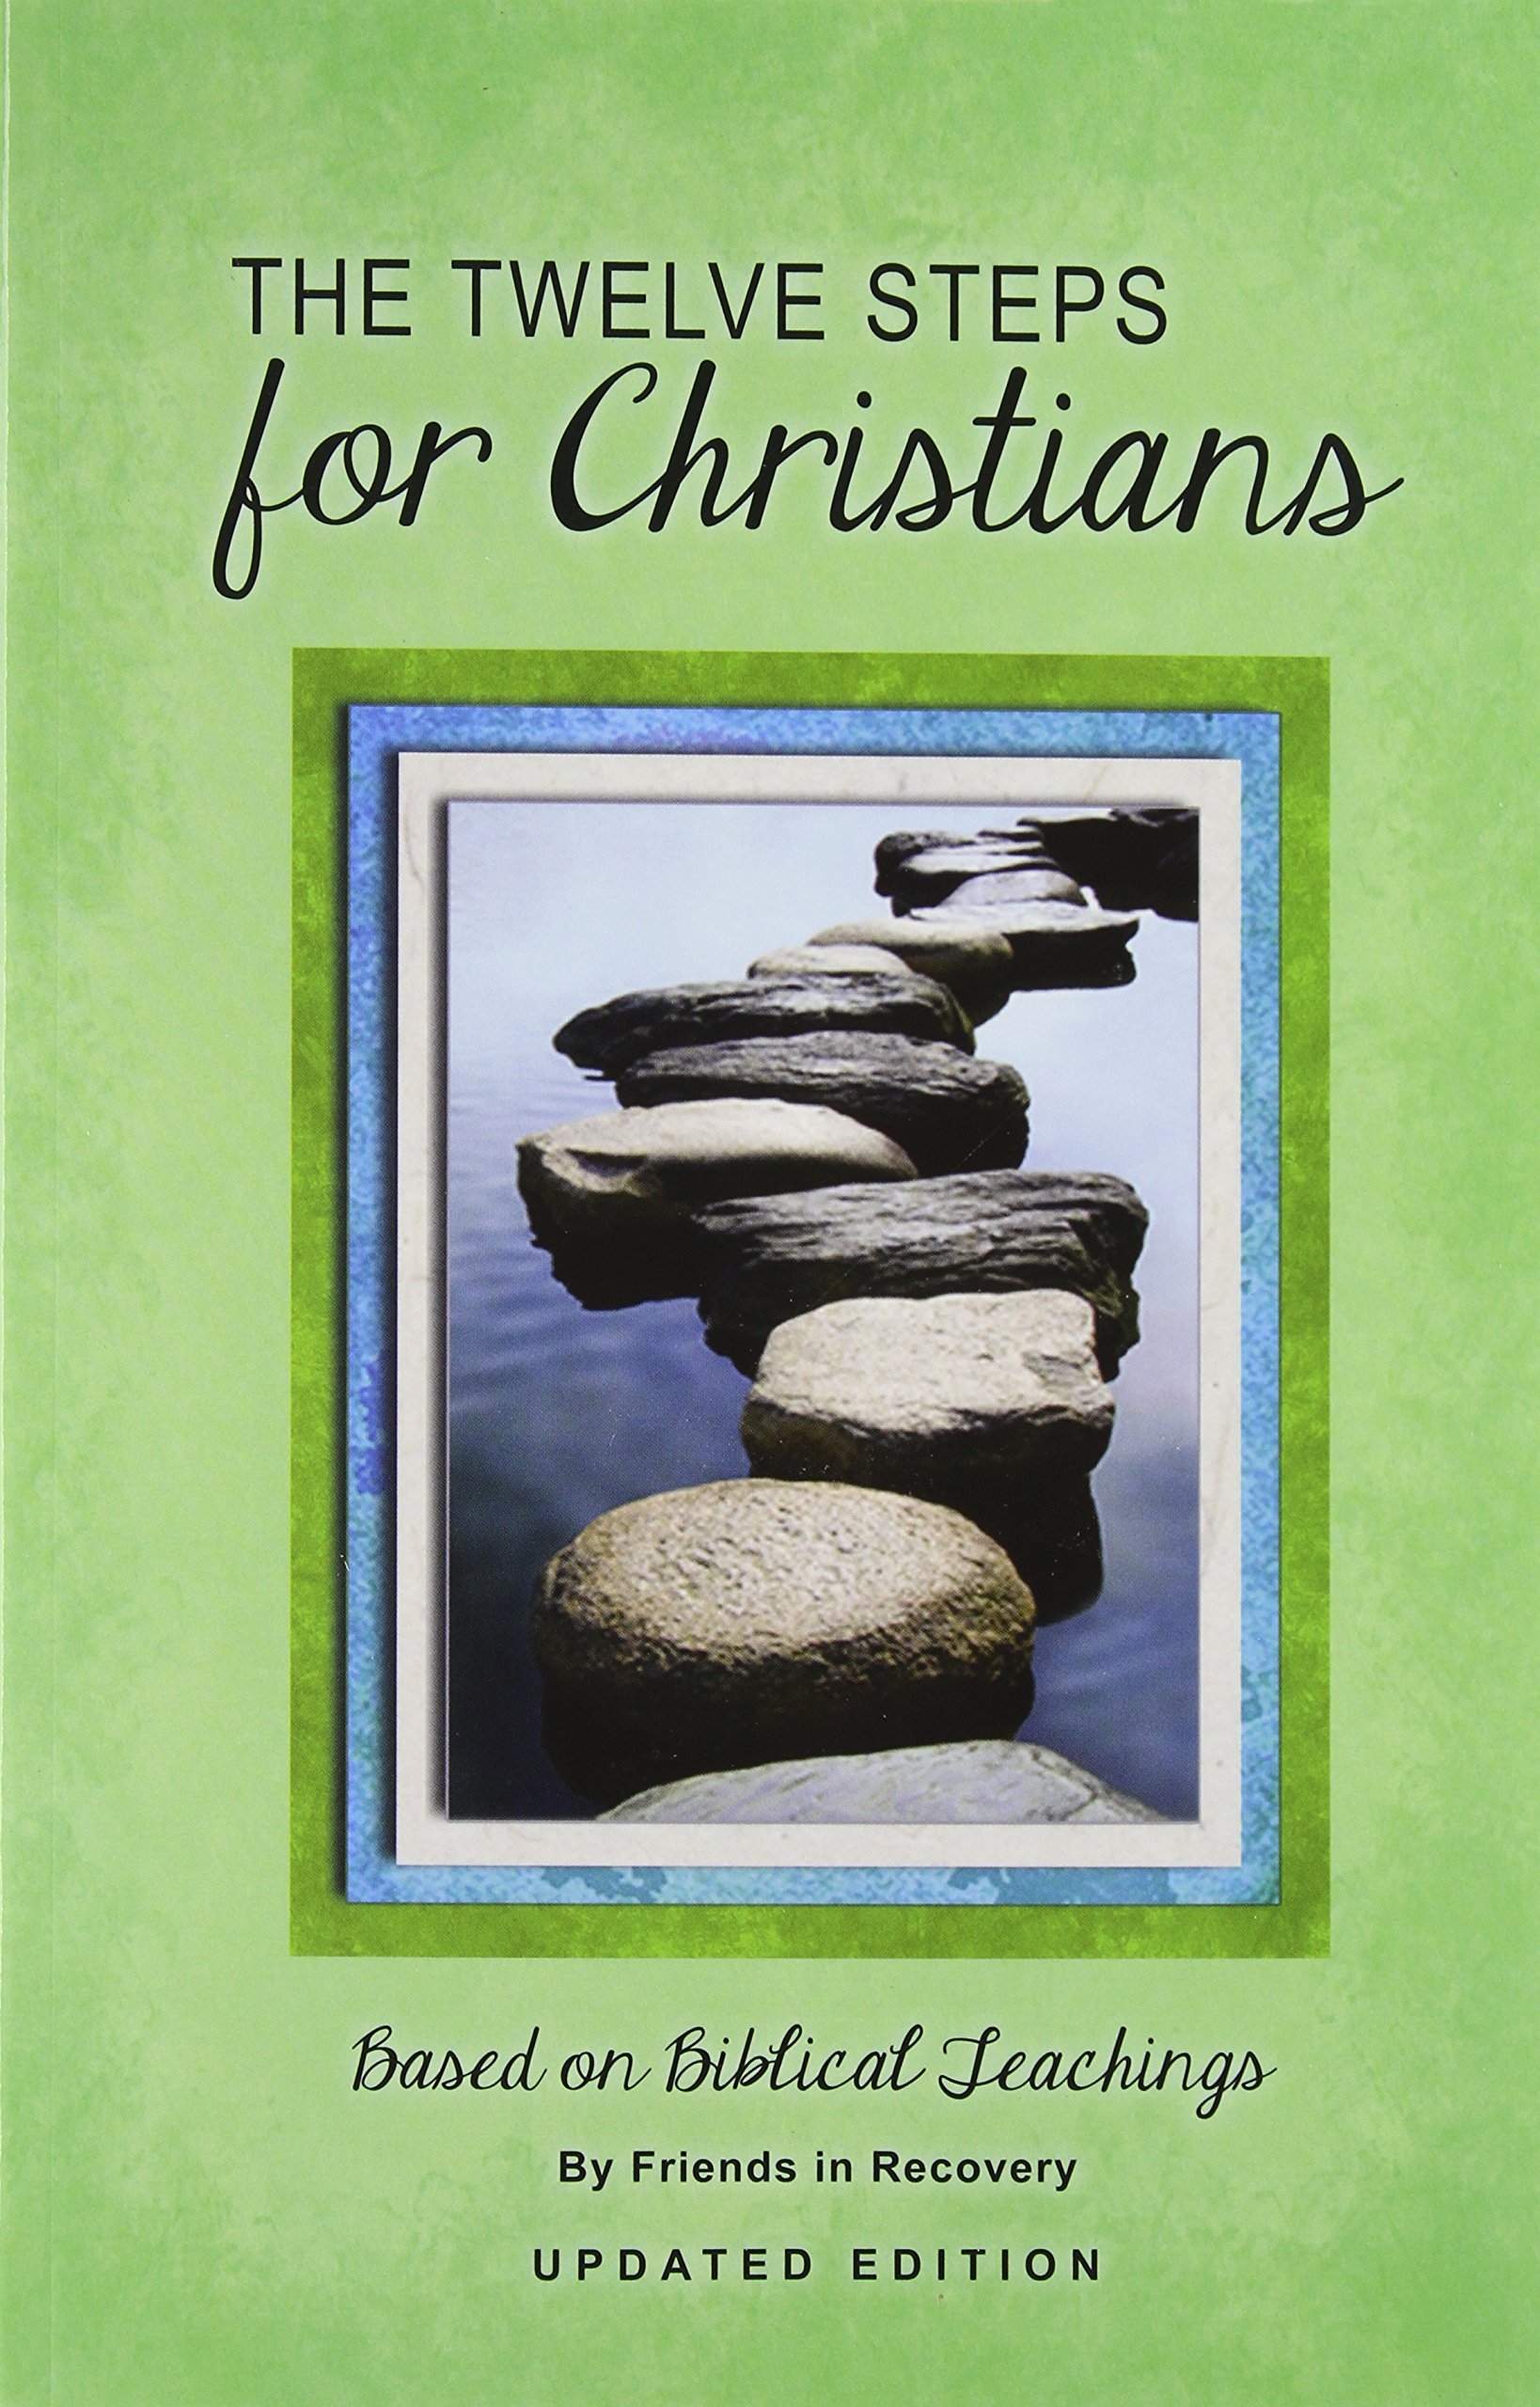 Image OfThe Twelve Steps For Christians